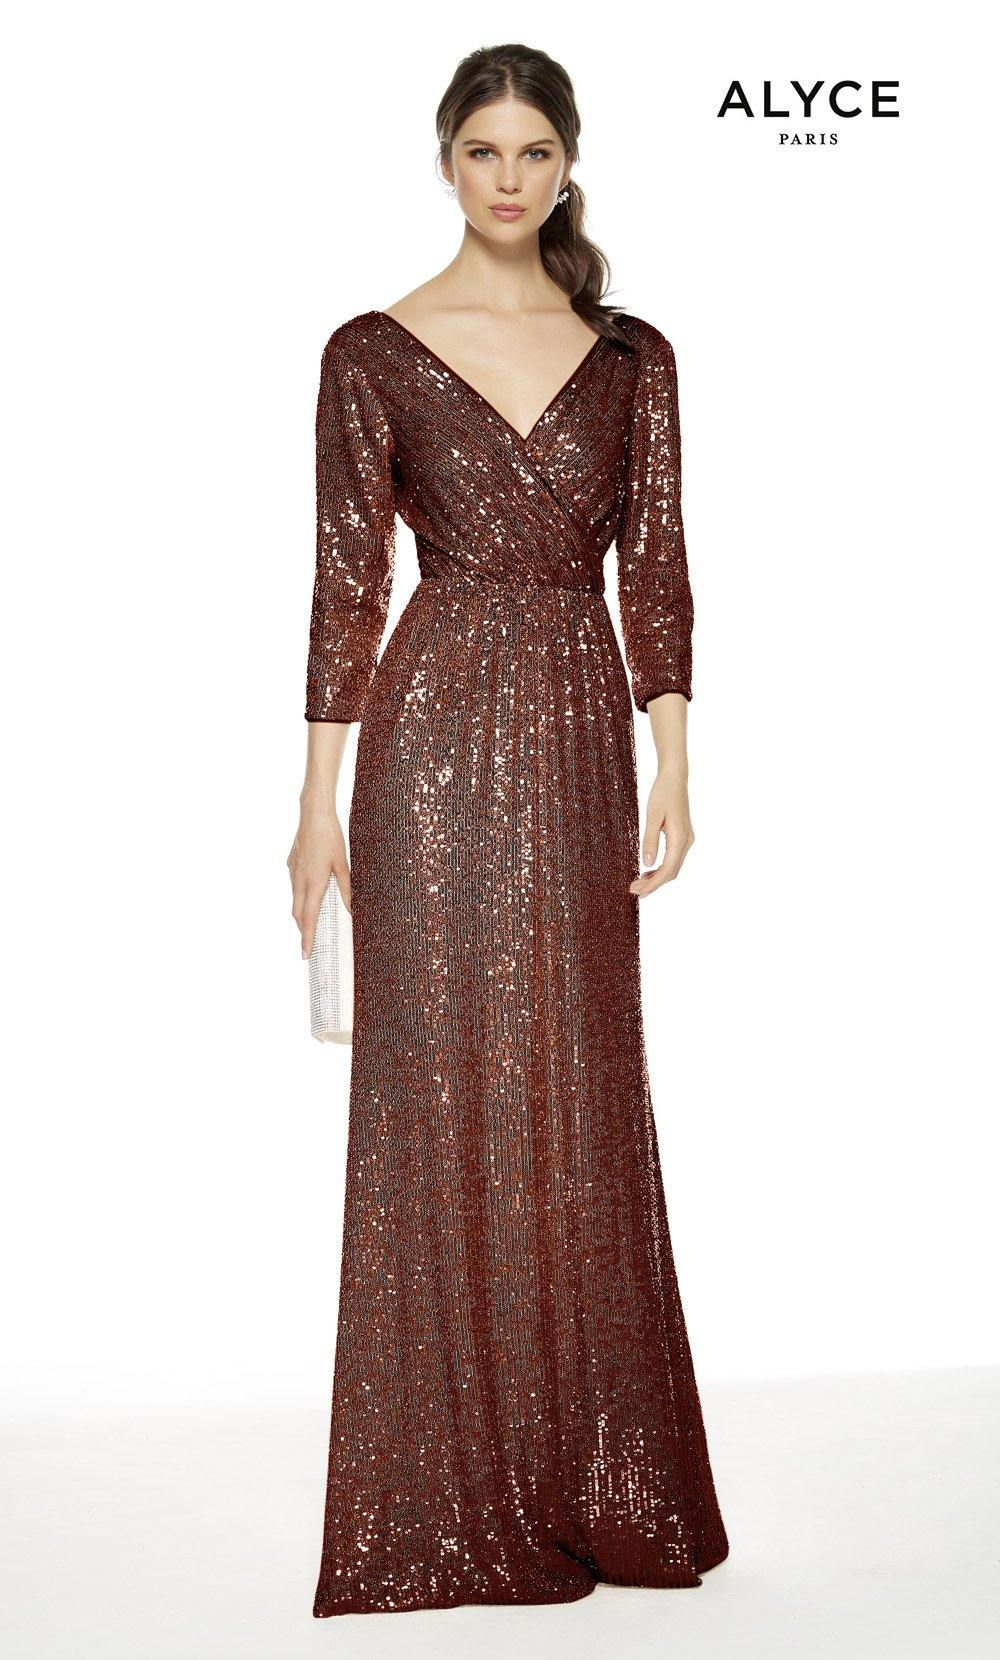 Wine colored sequin formal dress with a V-neckline and 3/4 sleeves